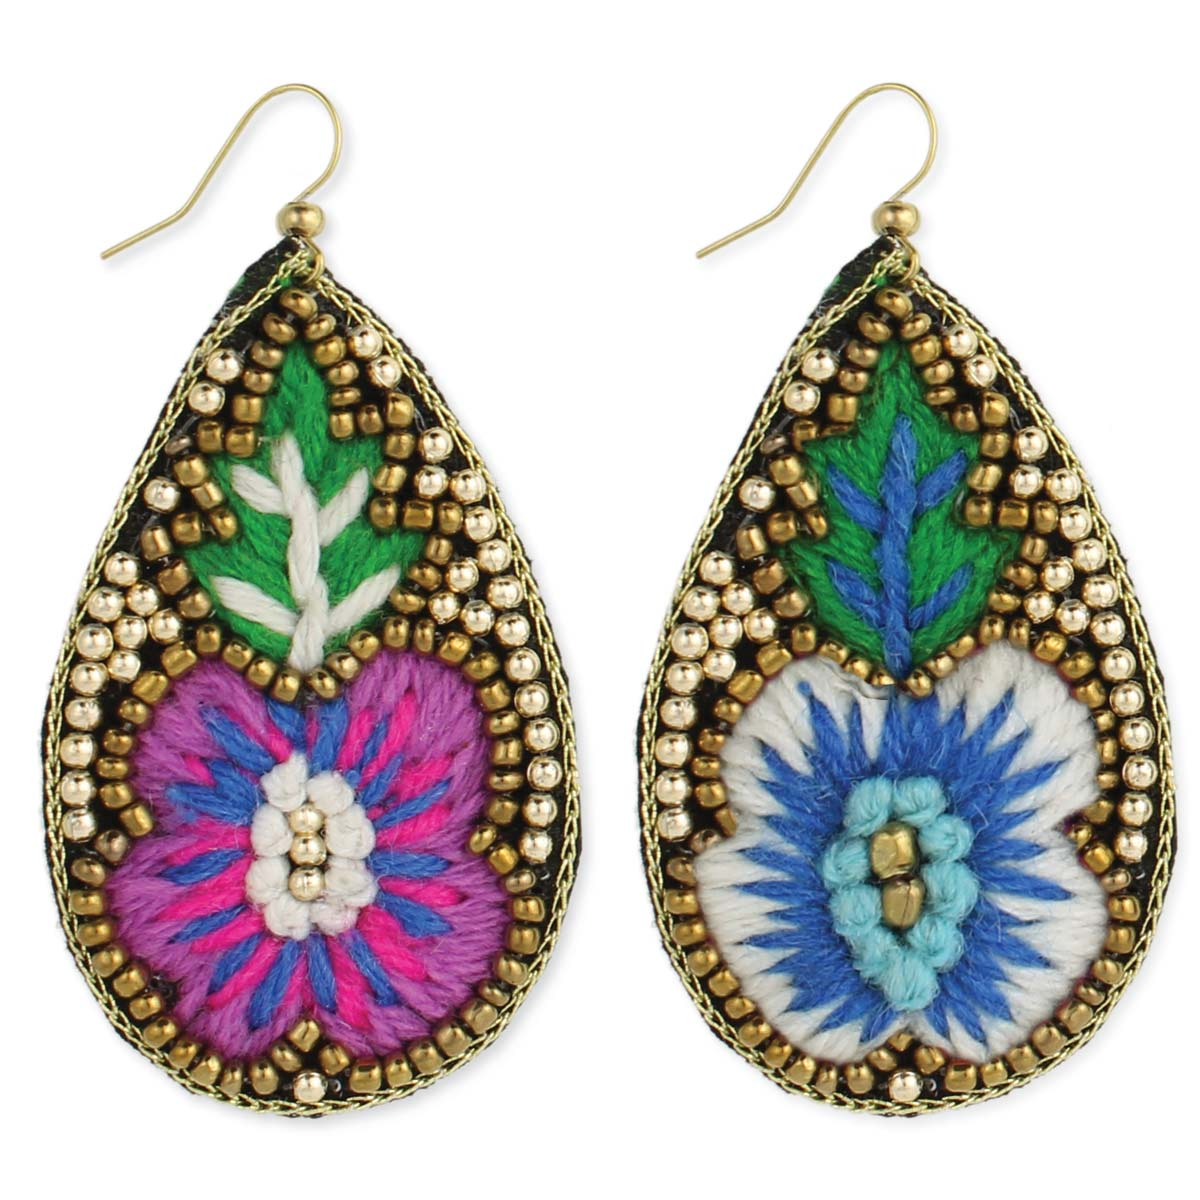 Yarn Embroidered Flower Teardrop Earring